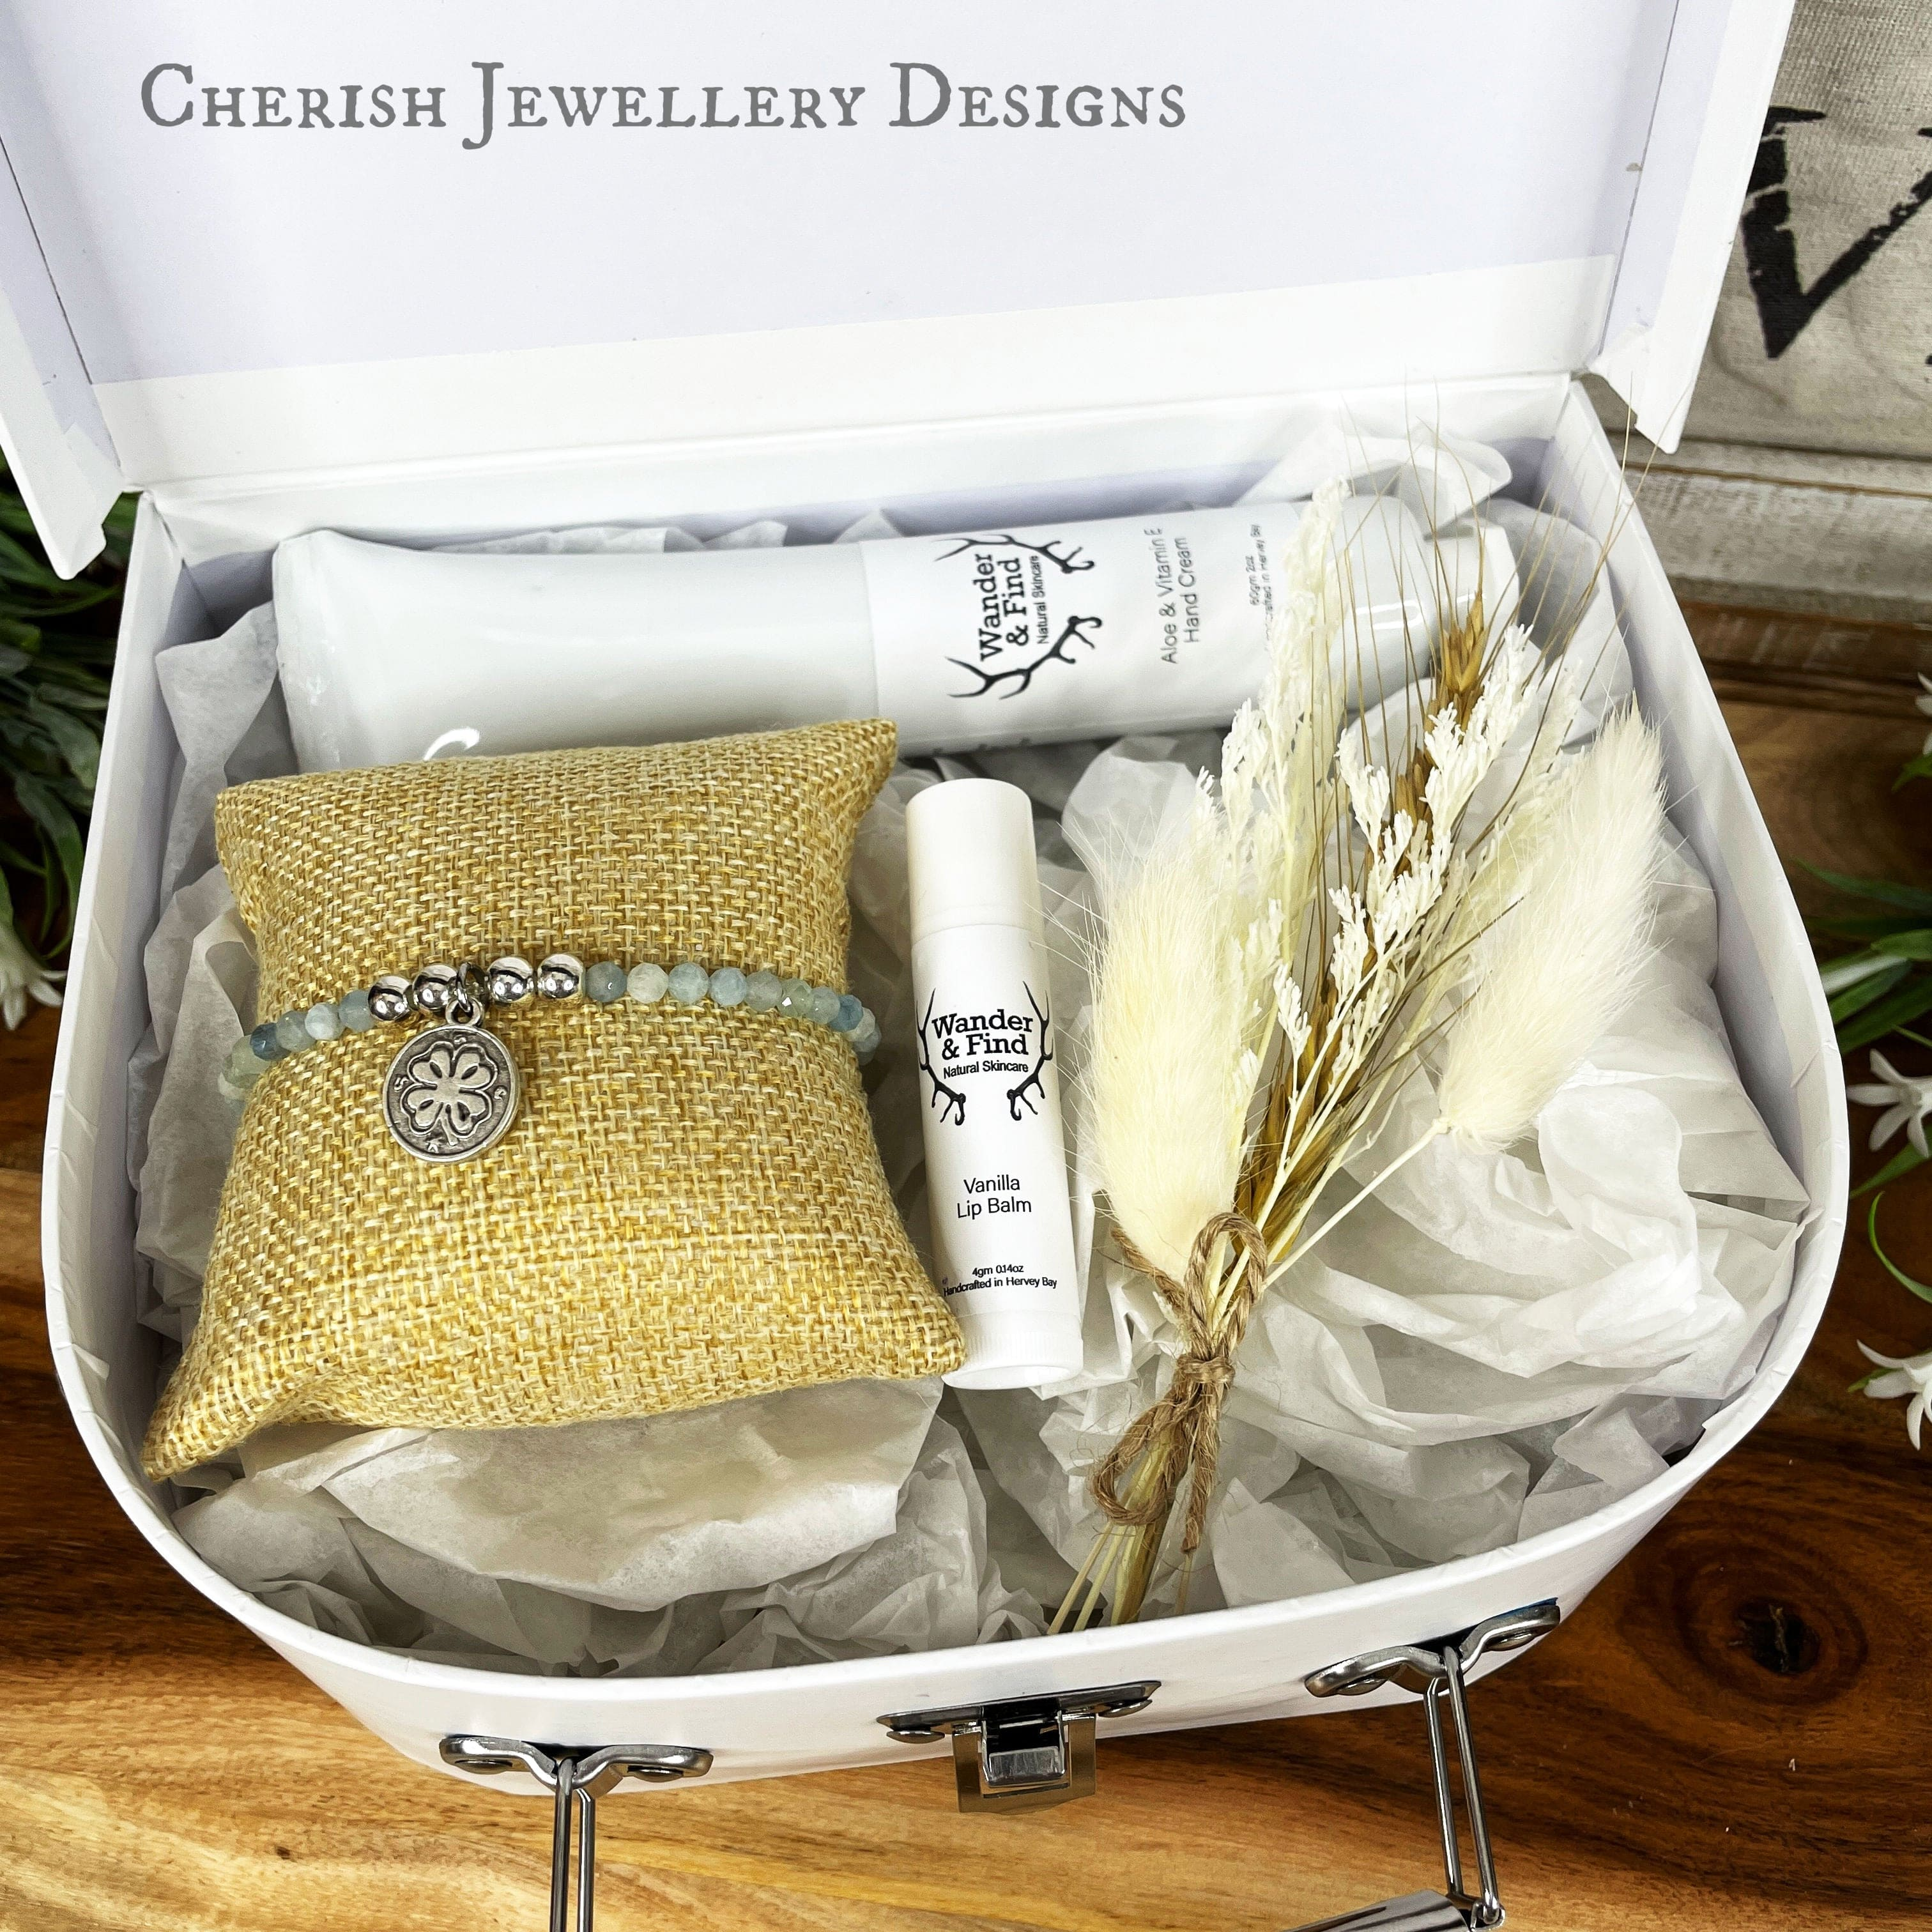 Small White Suitcase Gift Box